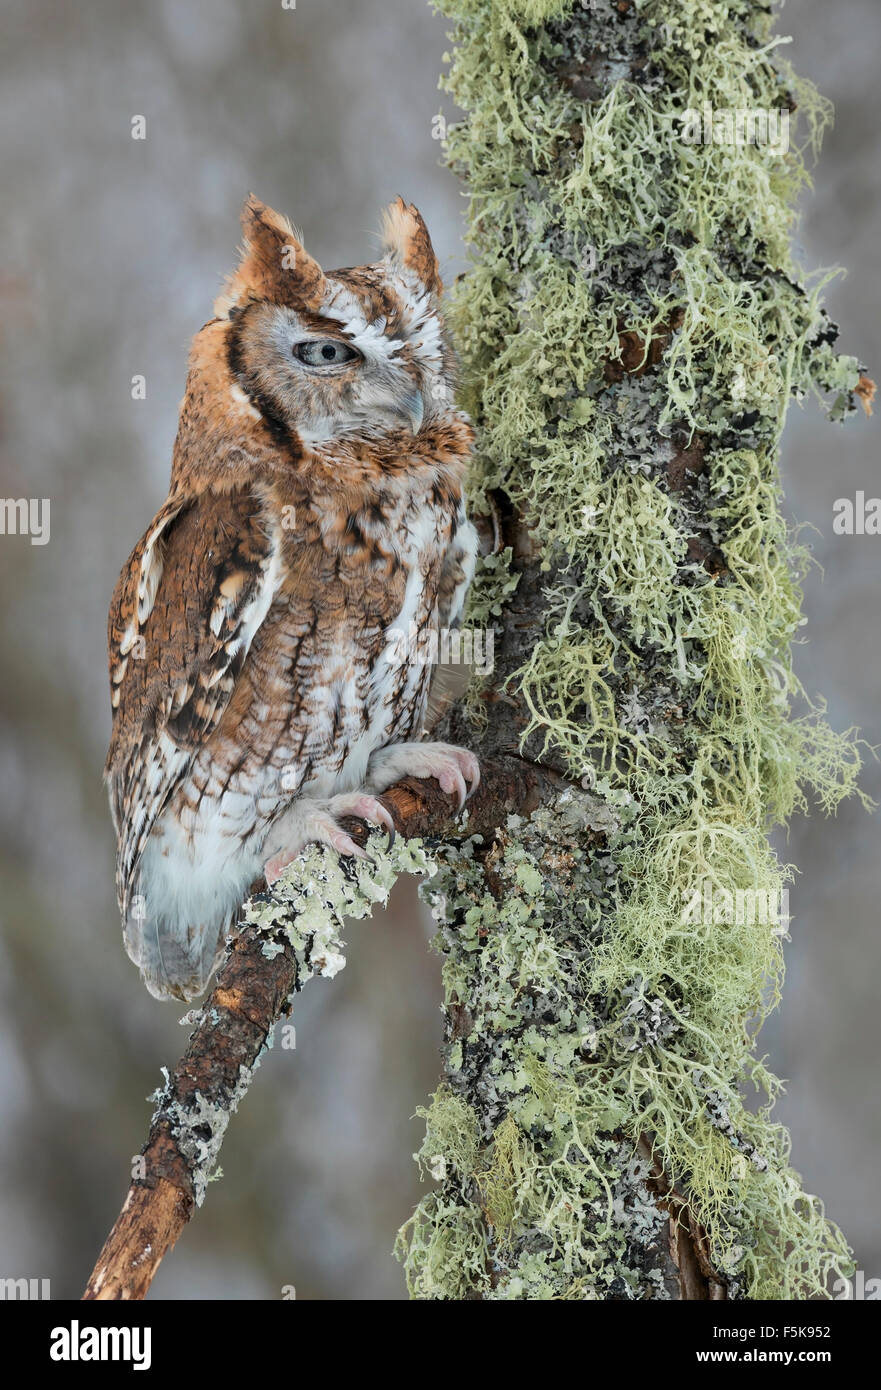 Eastern Screech Owl, Red phase (Megascops asio) sitting on lichen-covered branch, North America - Stock Image